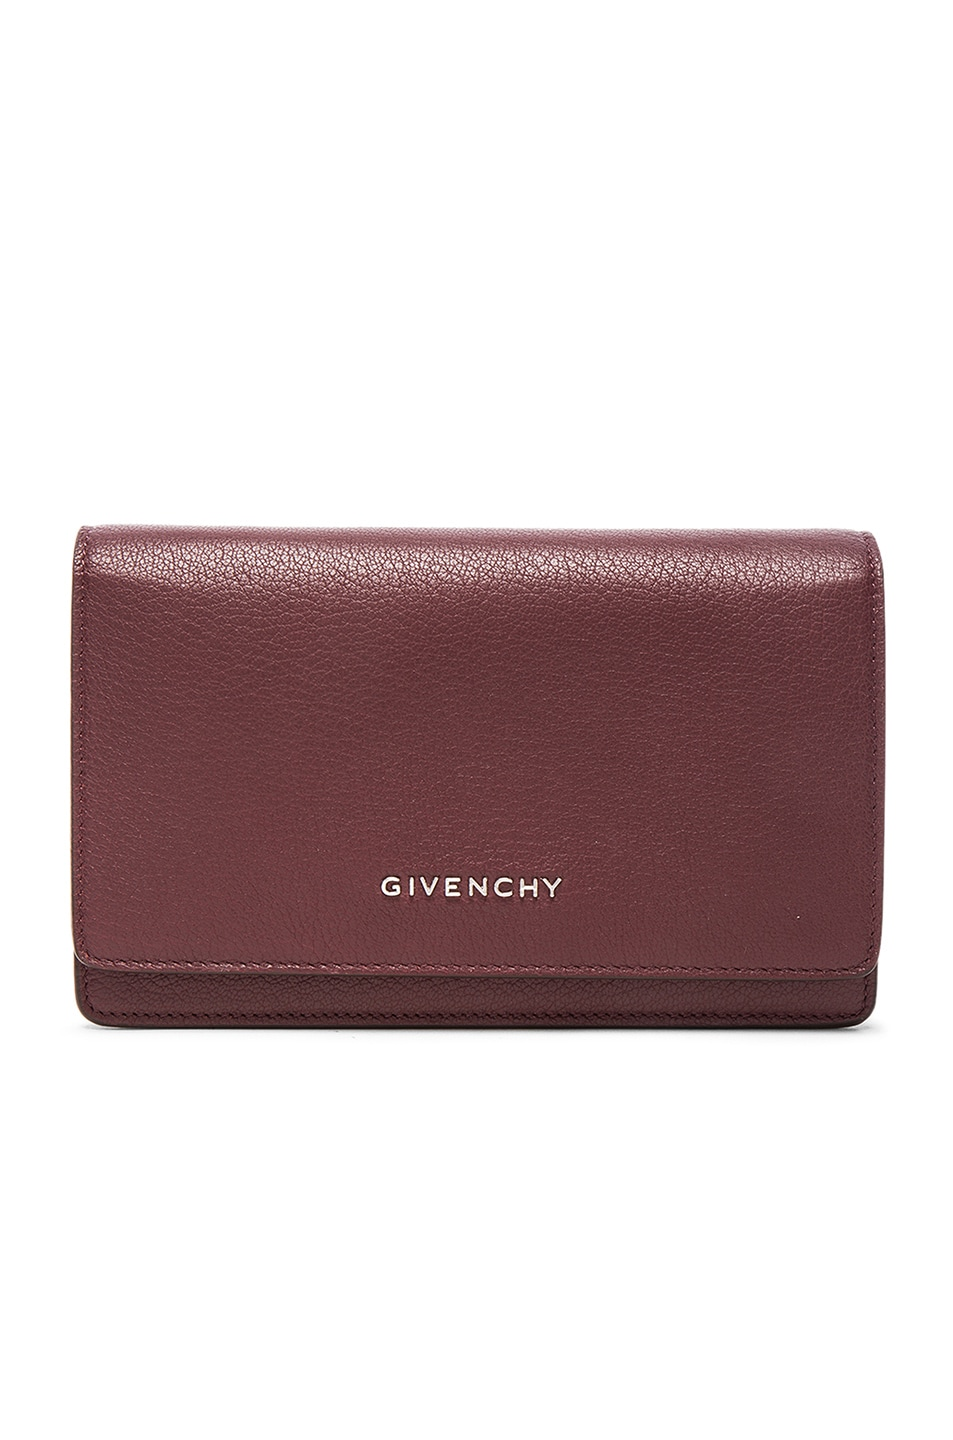 Image 1 of Givenchy Pandora Chain Wallet in Oxblood